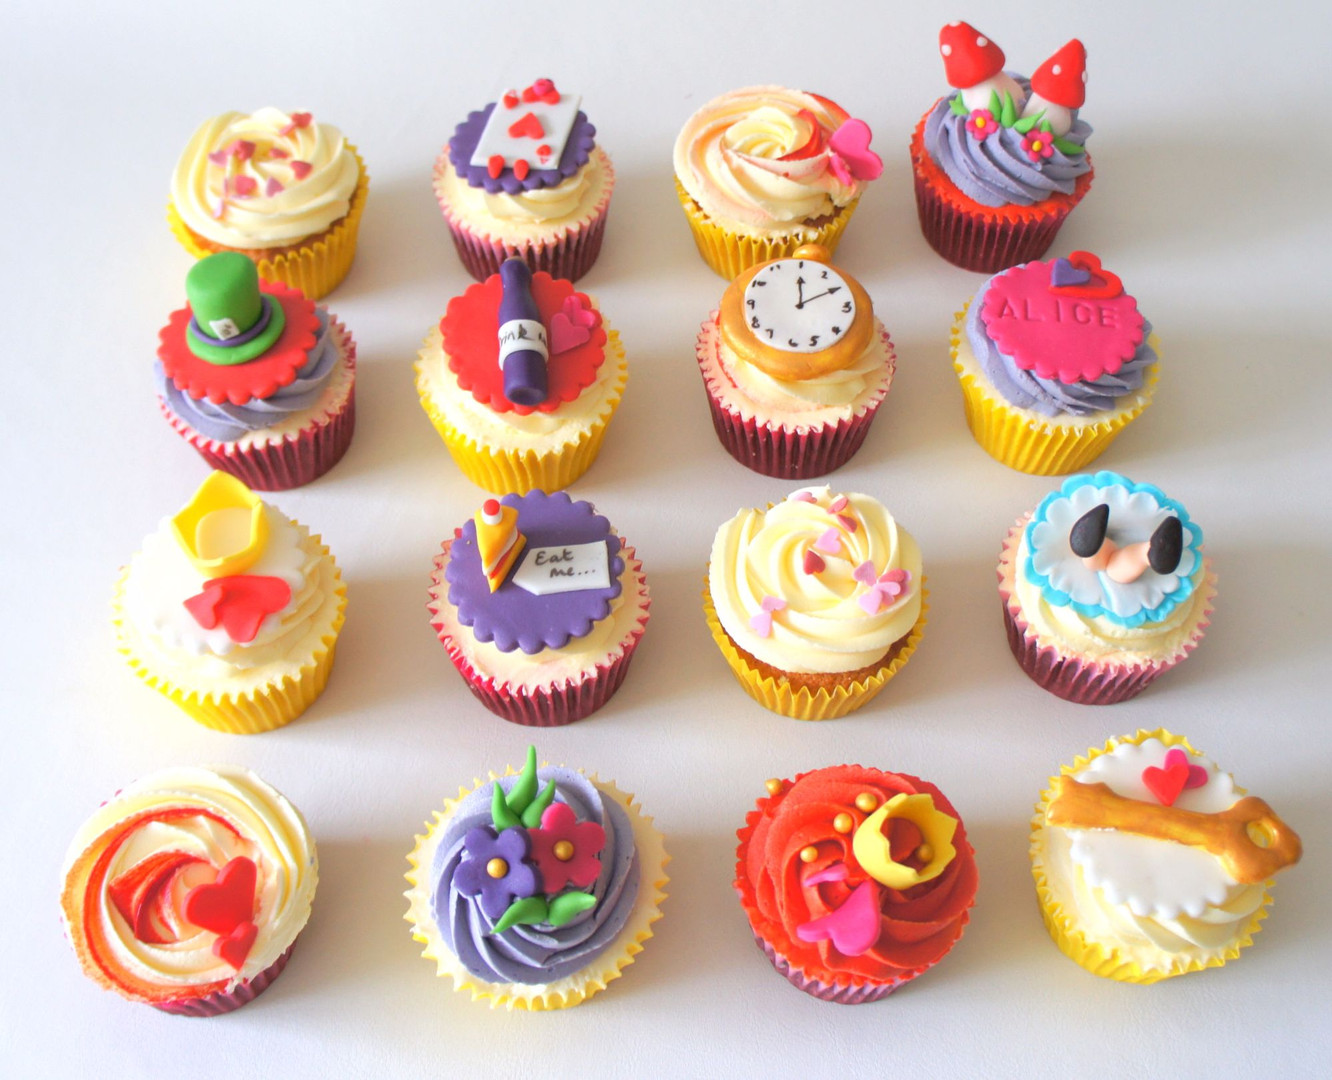 Alice in Wonderland Cupcakes.jpg